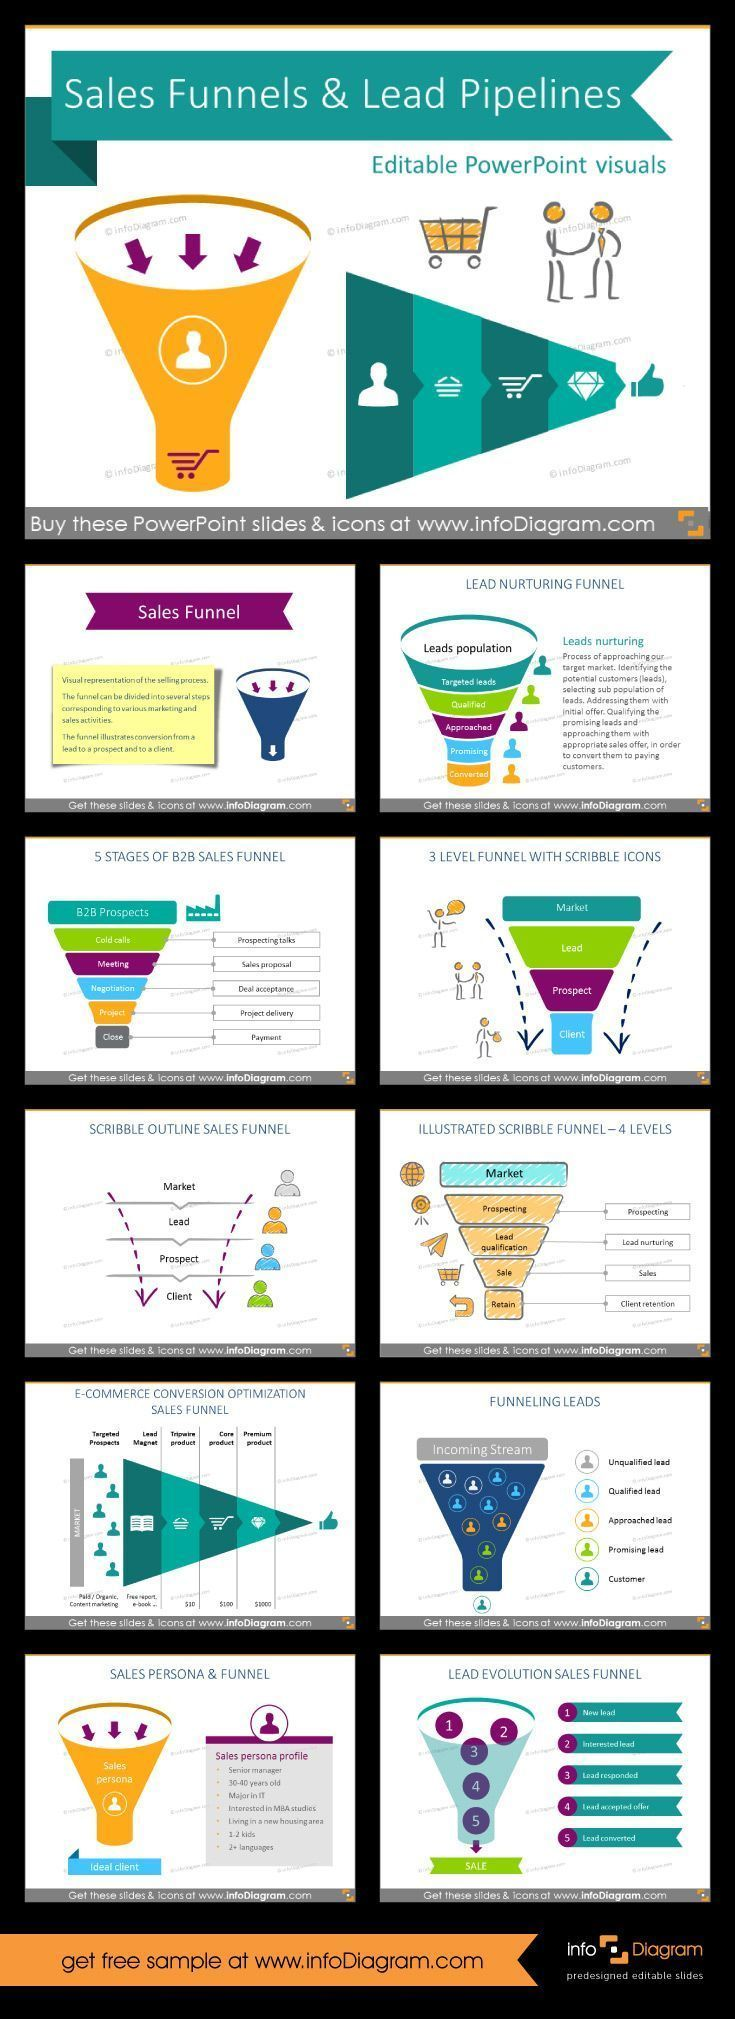 Sales Funnel Diagrams and Pipeline Process Charts Collection of sales funnel diagrams pre-designed for Powerpoint slides. Template with various marketing and sales funnel process diagrams steps of sales funnel lead to client conversion pipelne selling pipeline of prospects, leads, customers digital marketing funnel with lead magnet, tripwire, up-sell extendable set of flat icon symbols for infographics fully editable style, size and colors #inboundmarketingfunnel